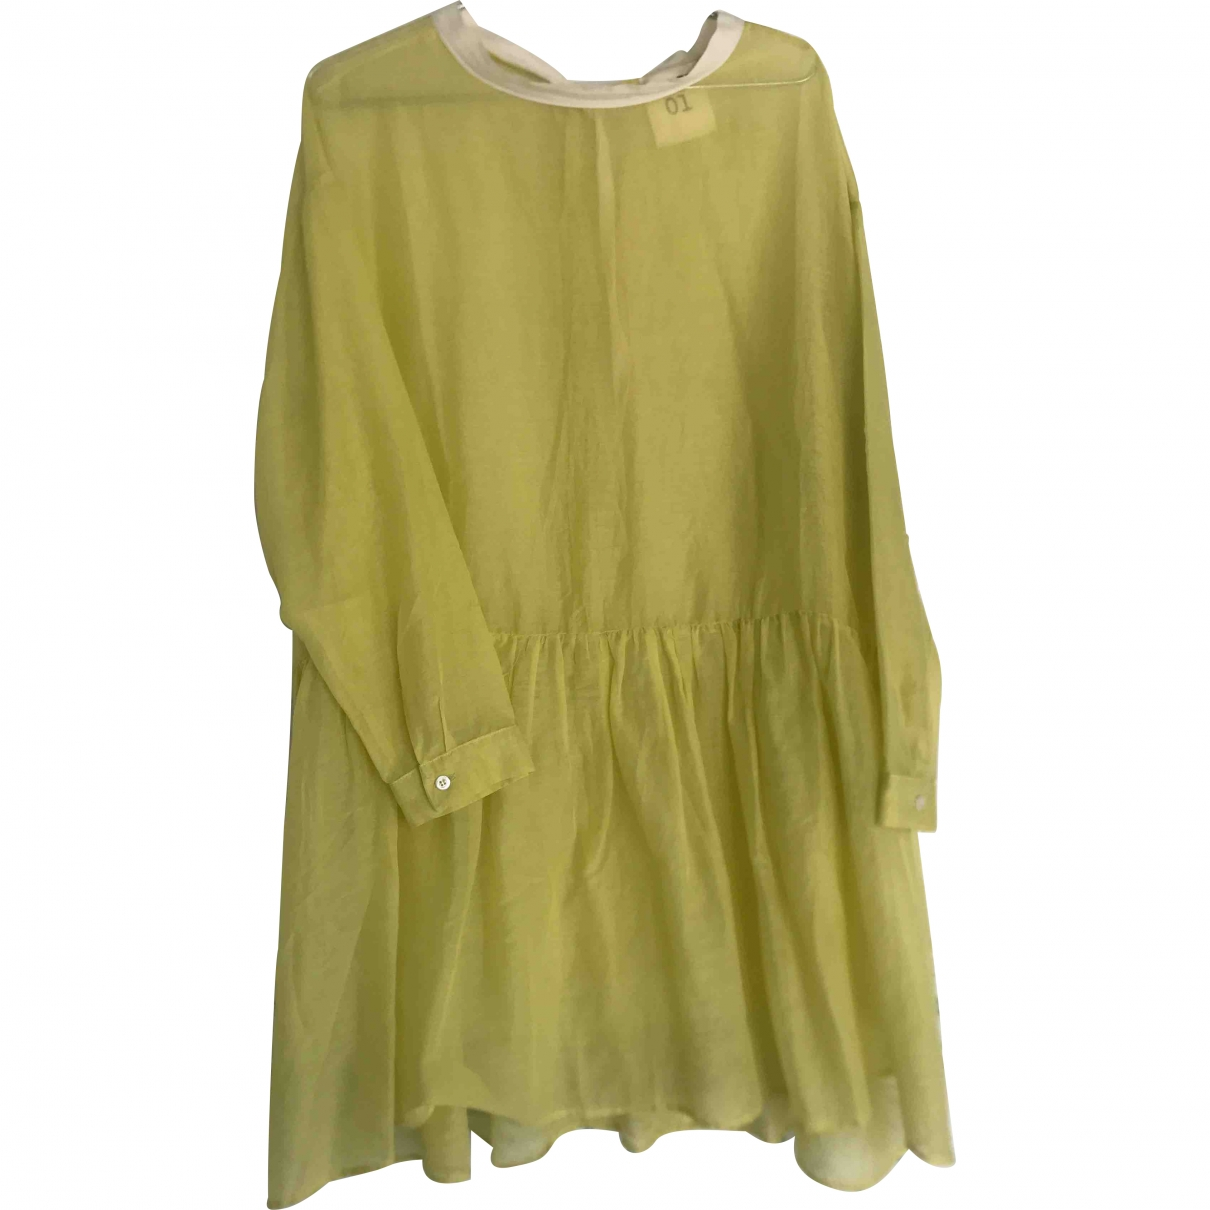 Semicouture \N Yellow Cotton dress for Women 42 IT